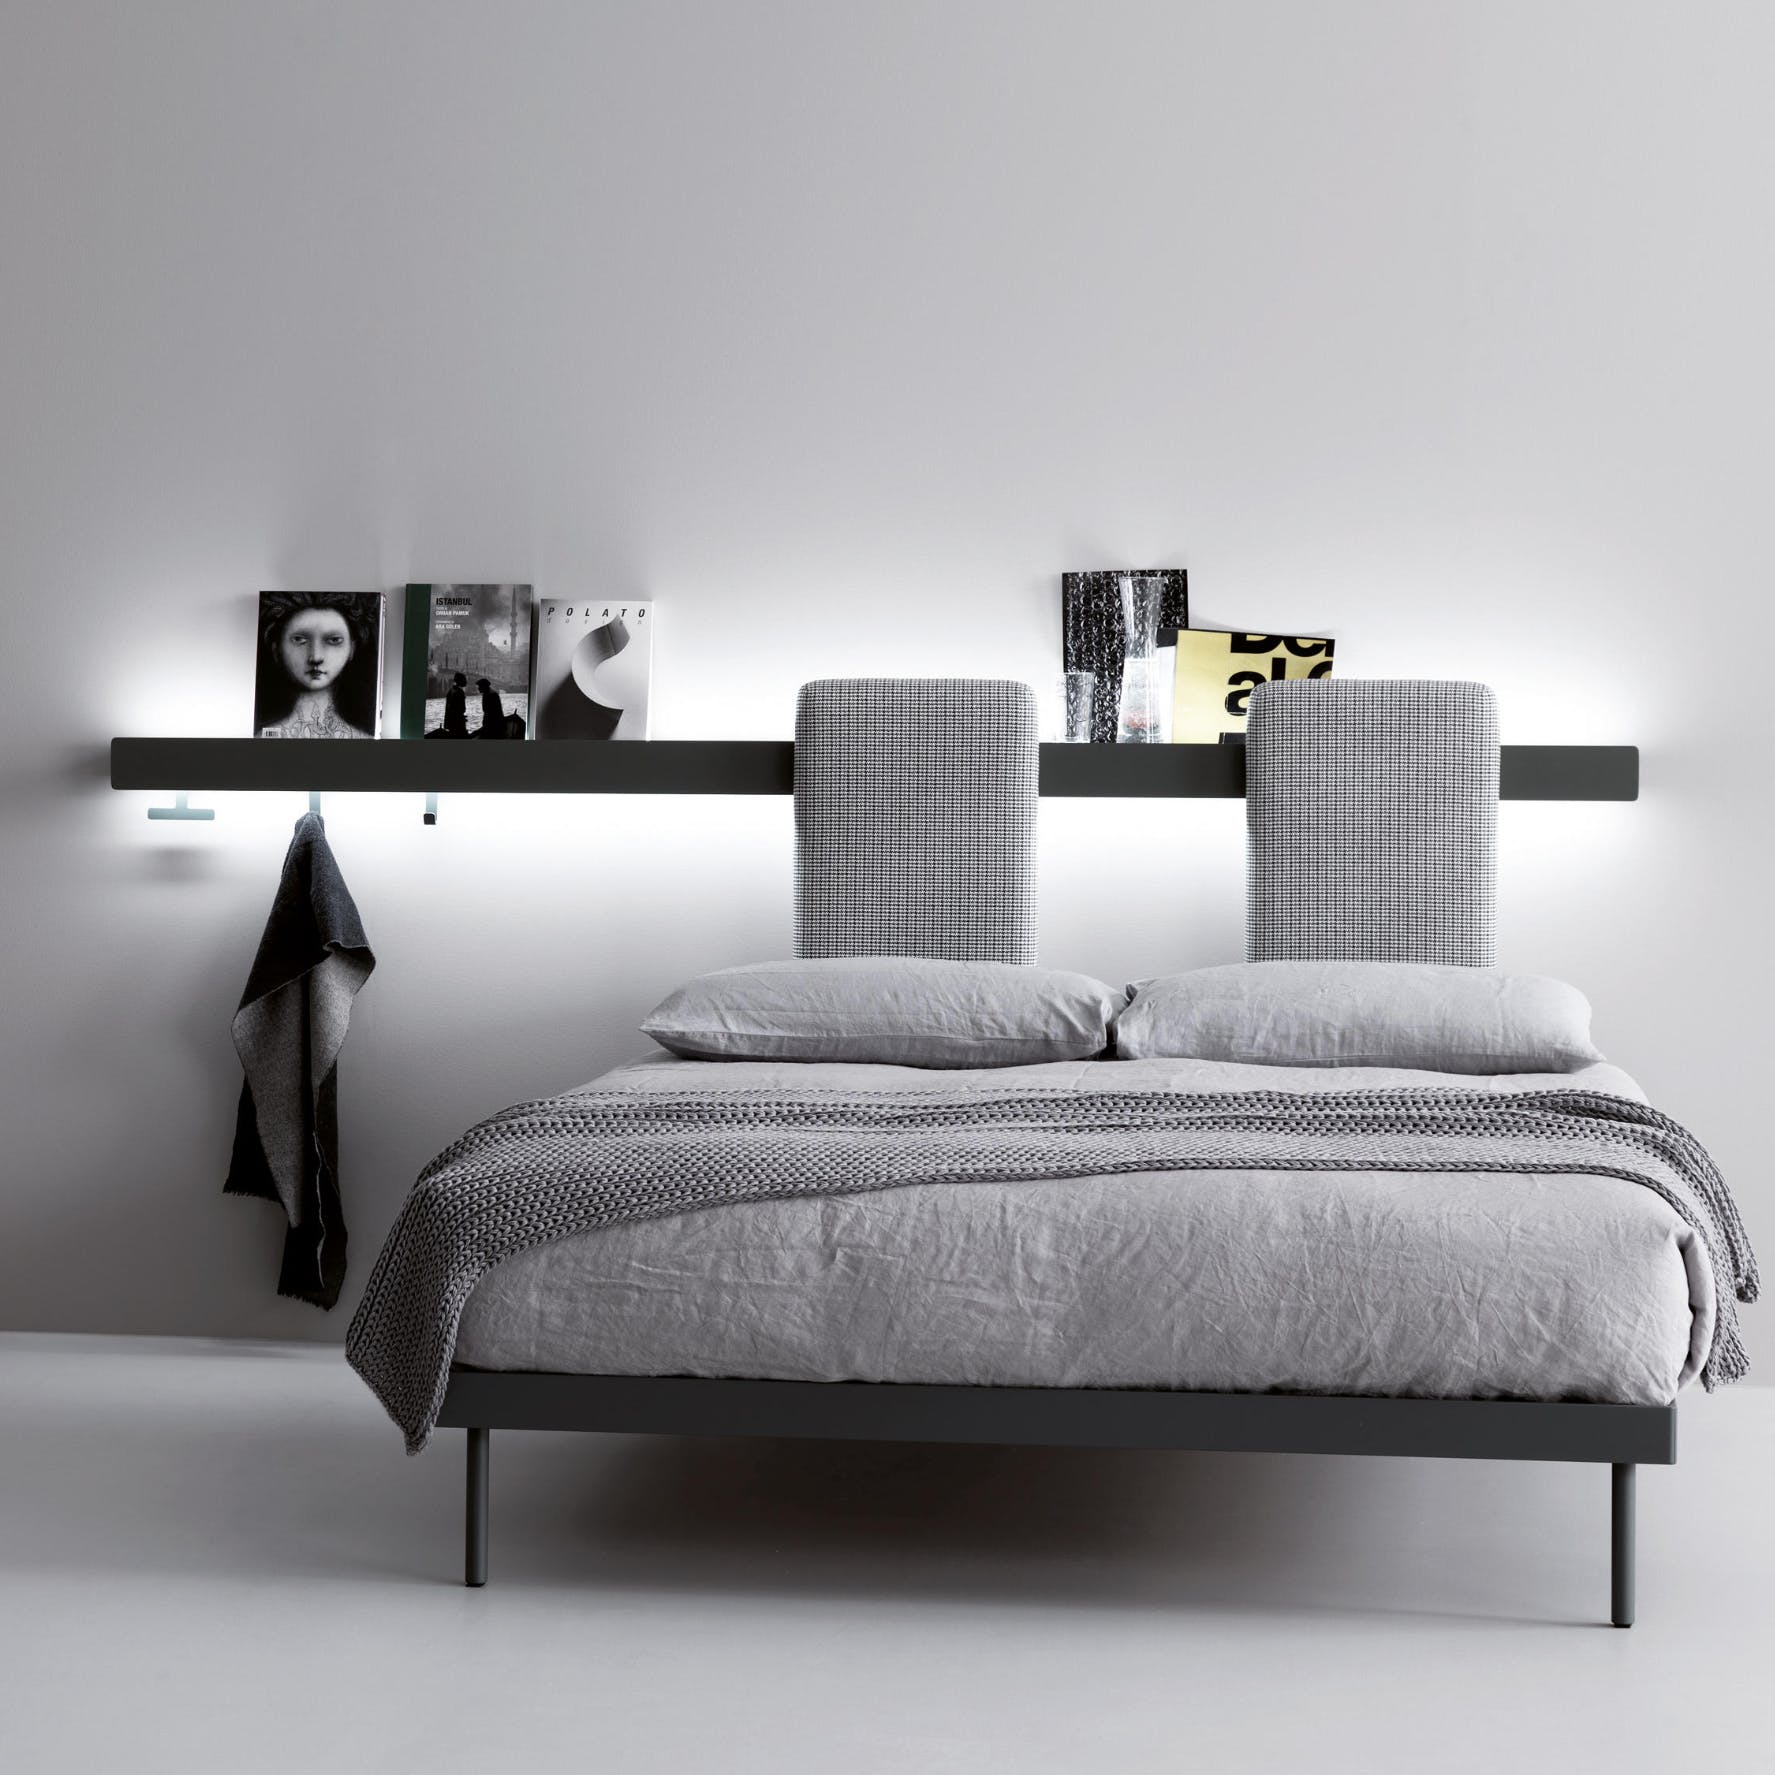 Caccaro Groove Bed Separate Haute Living